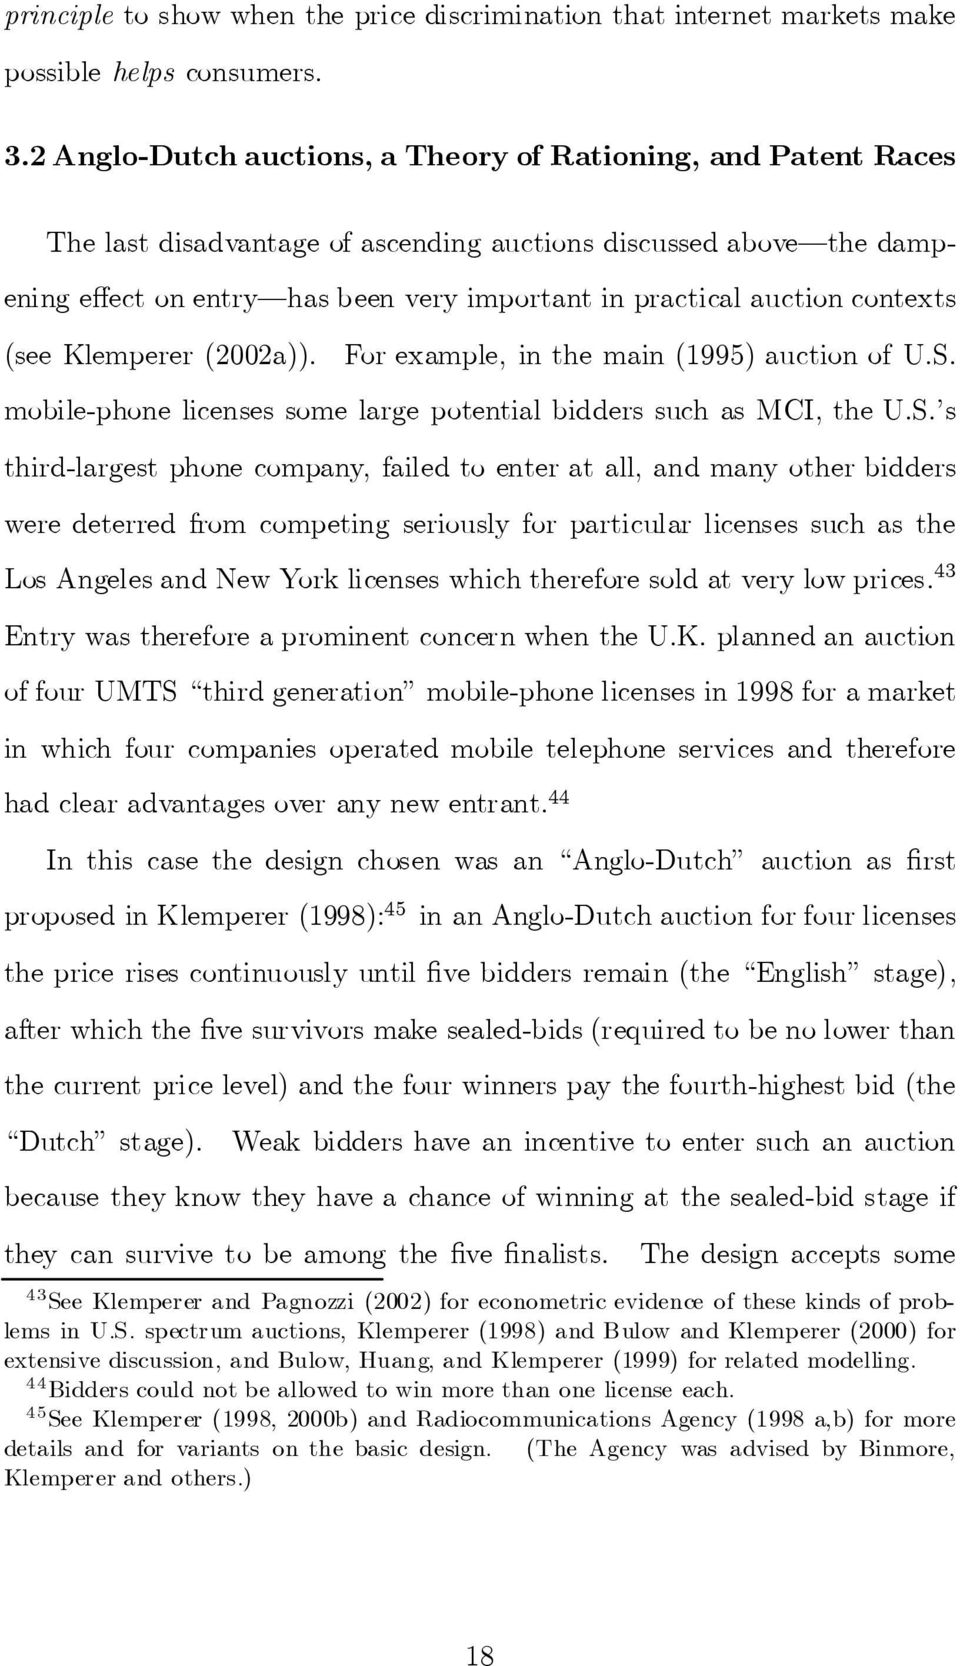 contexts (see Klemperer (2002a)). For example, in the main (1995) auction of U.S.